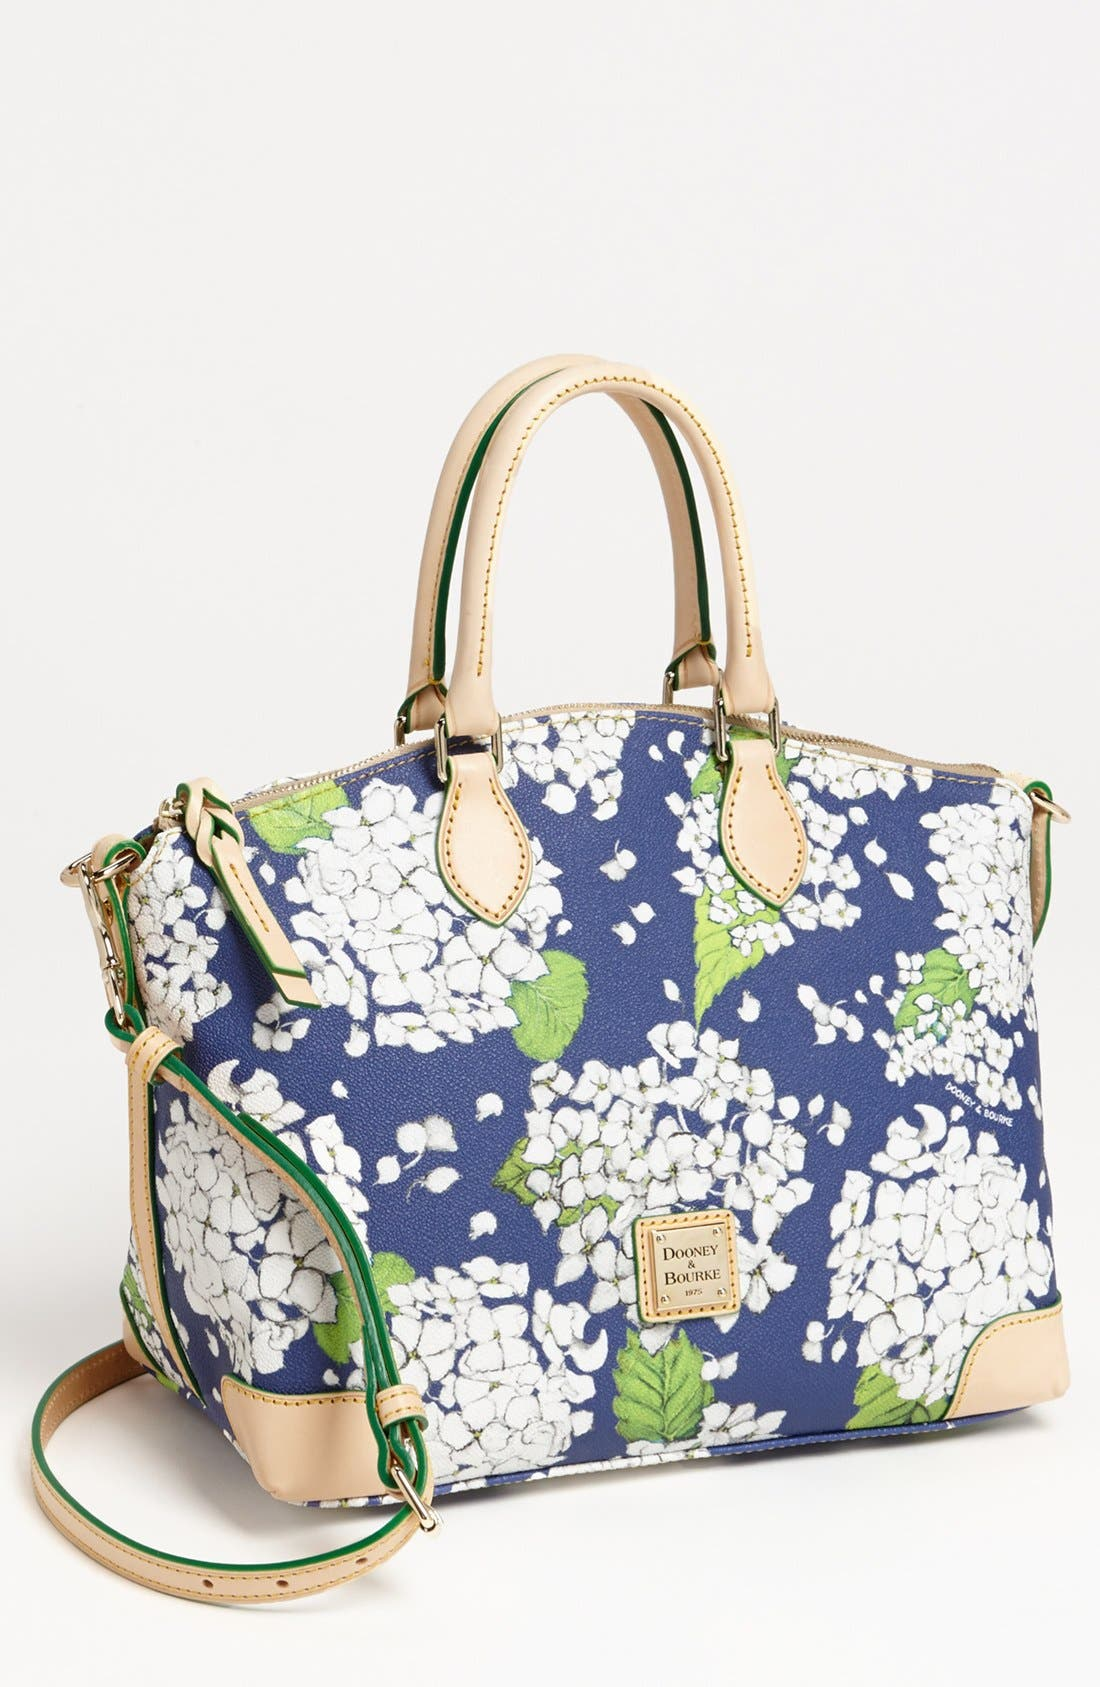 Main Image - Dooney & Bourke 'Hydrangea' Satchel